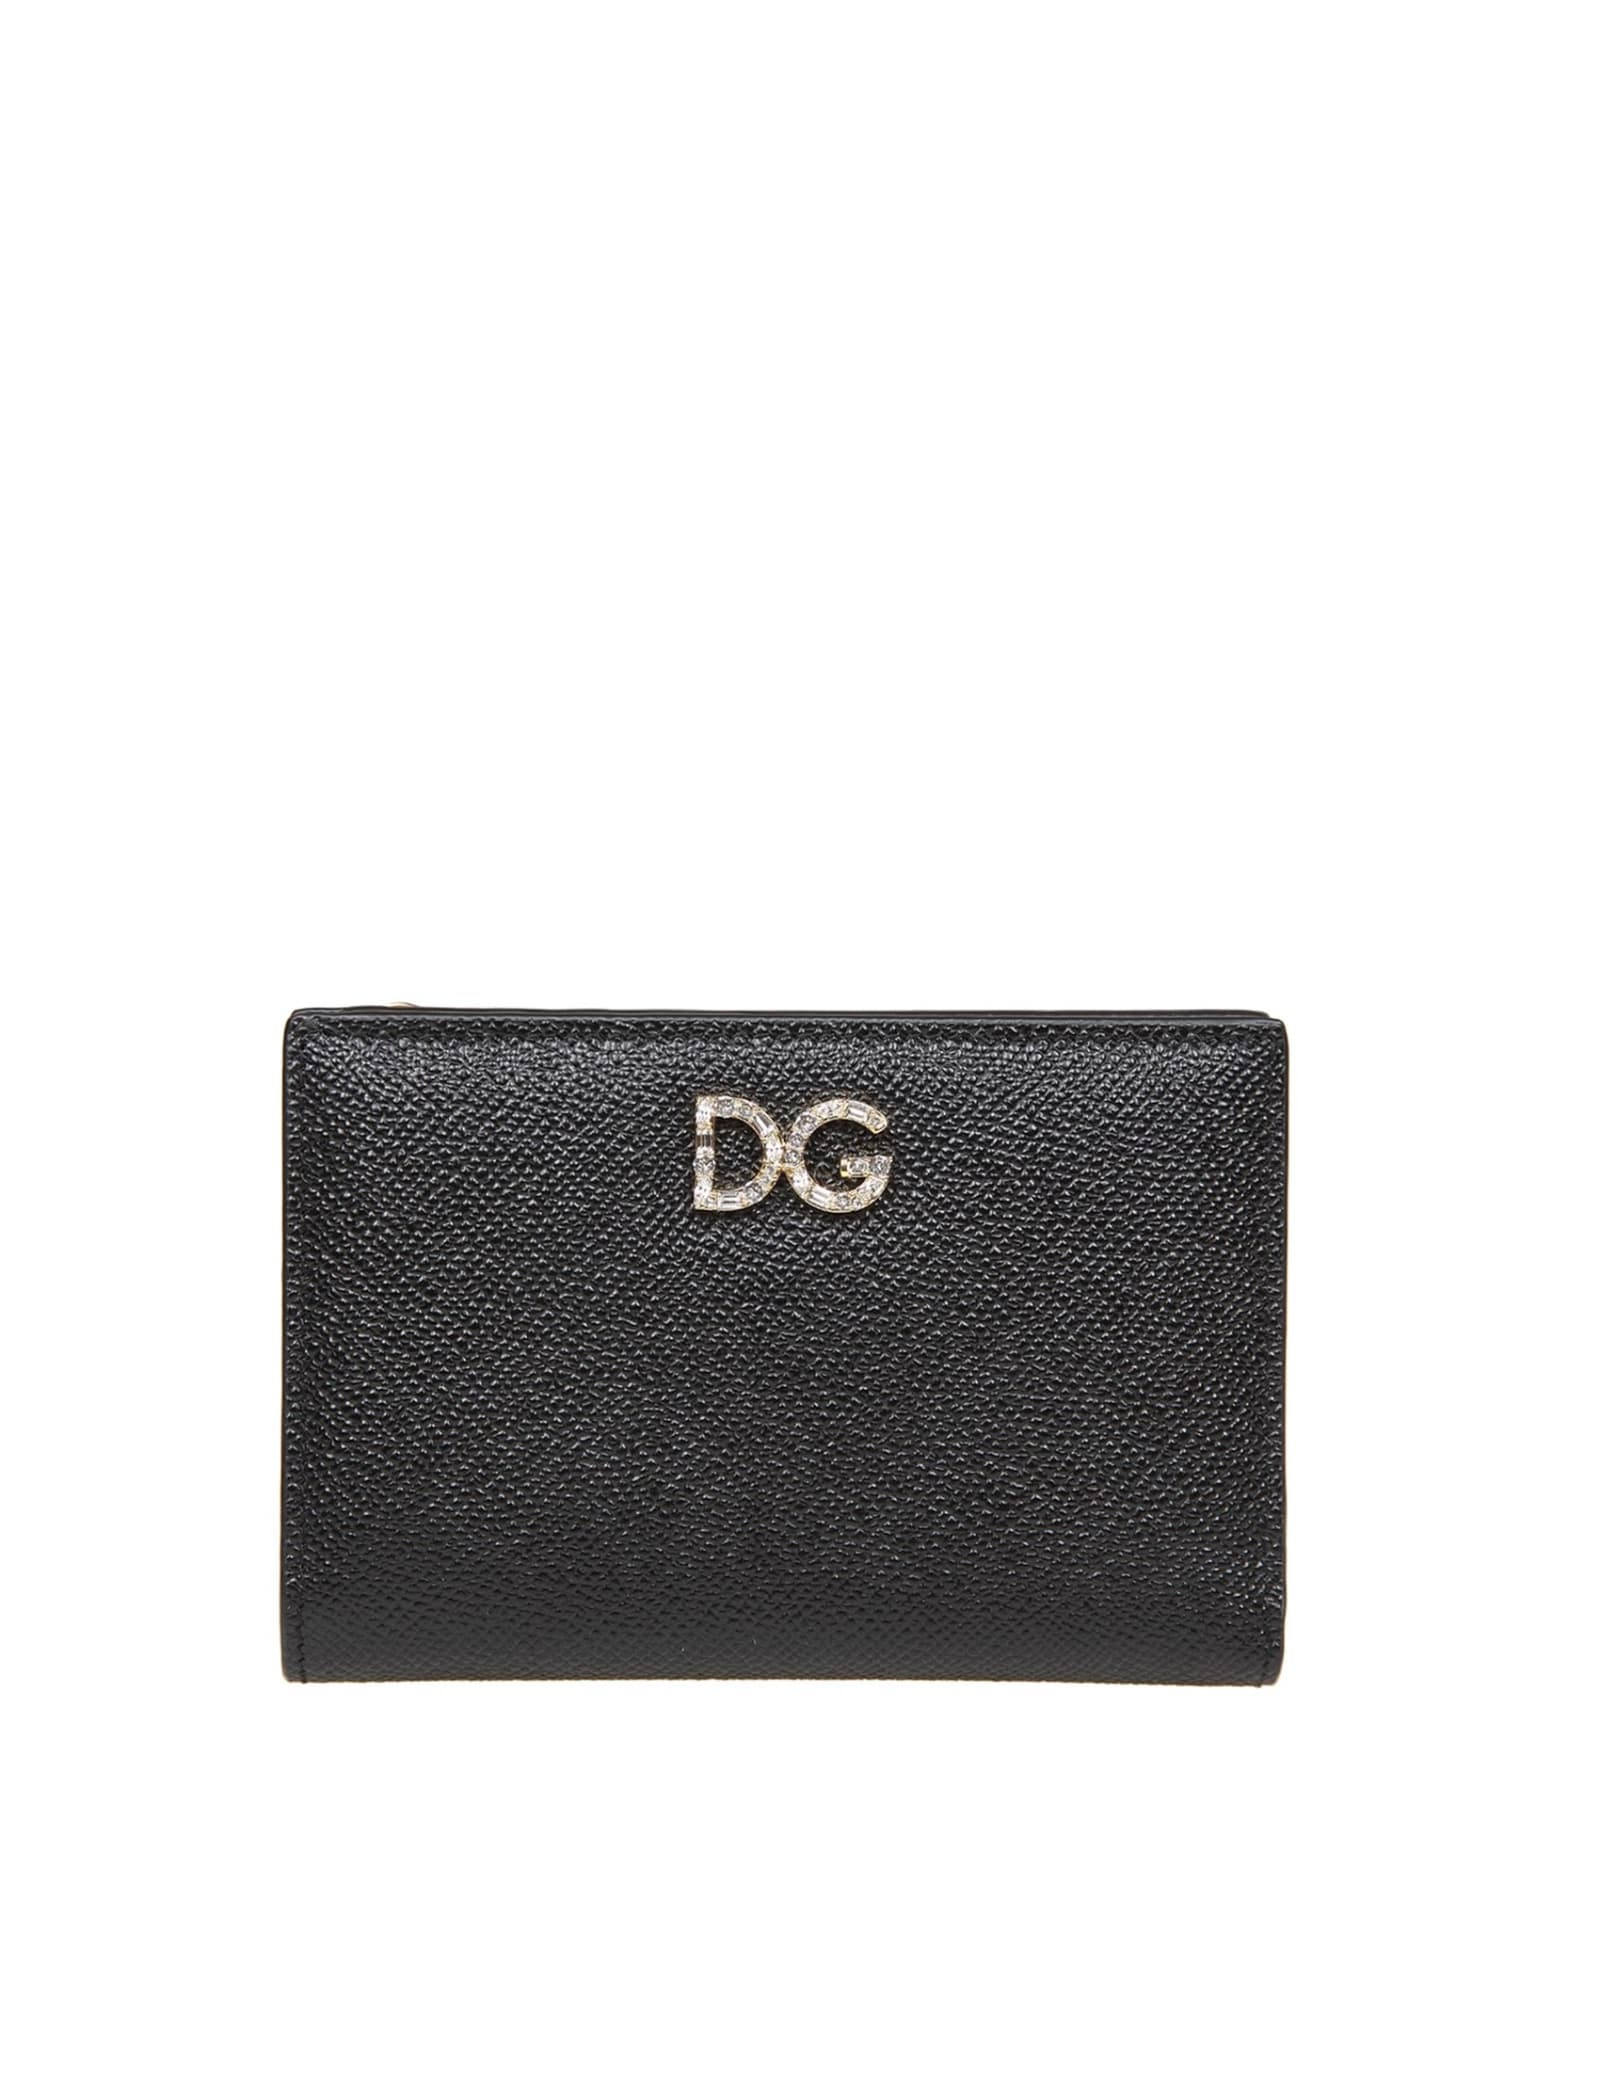 Dolce & Gabbana SMALL BLACK LEATHER WALLET